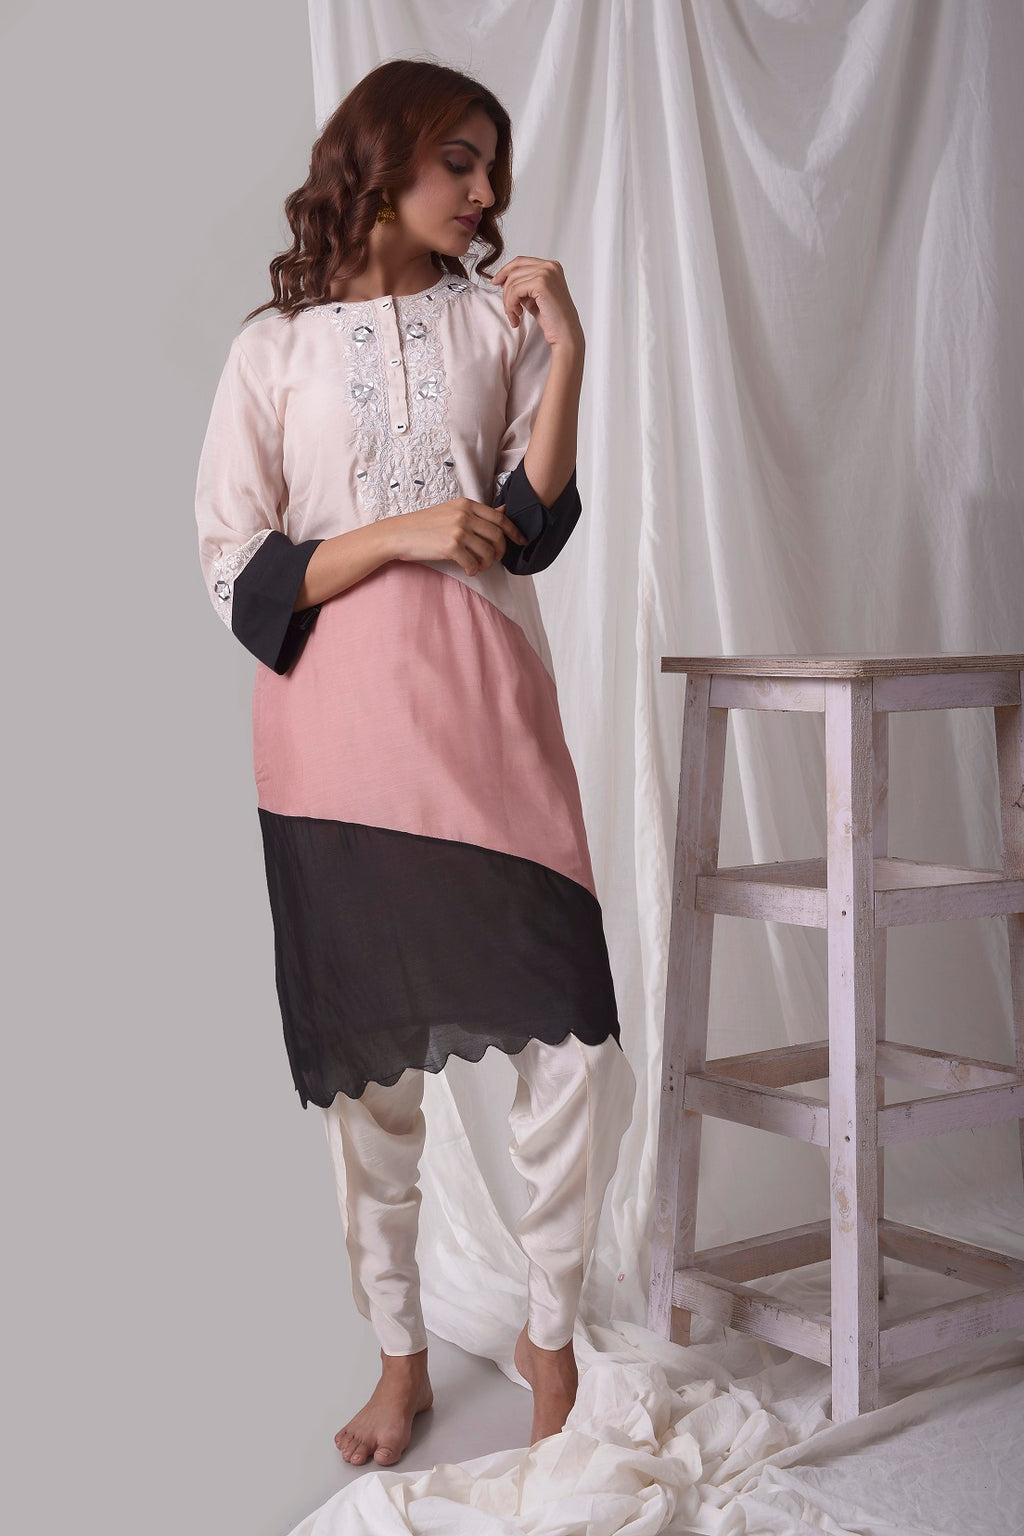 Buy off-white cotton silk suit online in USA. Suit has simple white work. Kurta has 3/4 length sleeves, white dhoti and its multi color with white, pink and black.Simple look makes it elegant. Be the talk of parties and weddings with exquisite designer gowns from Pure Elegance Indian clothing store in USA. Shop online now.-full view